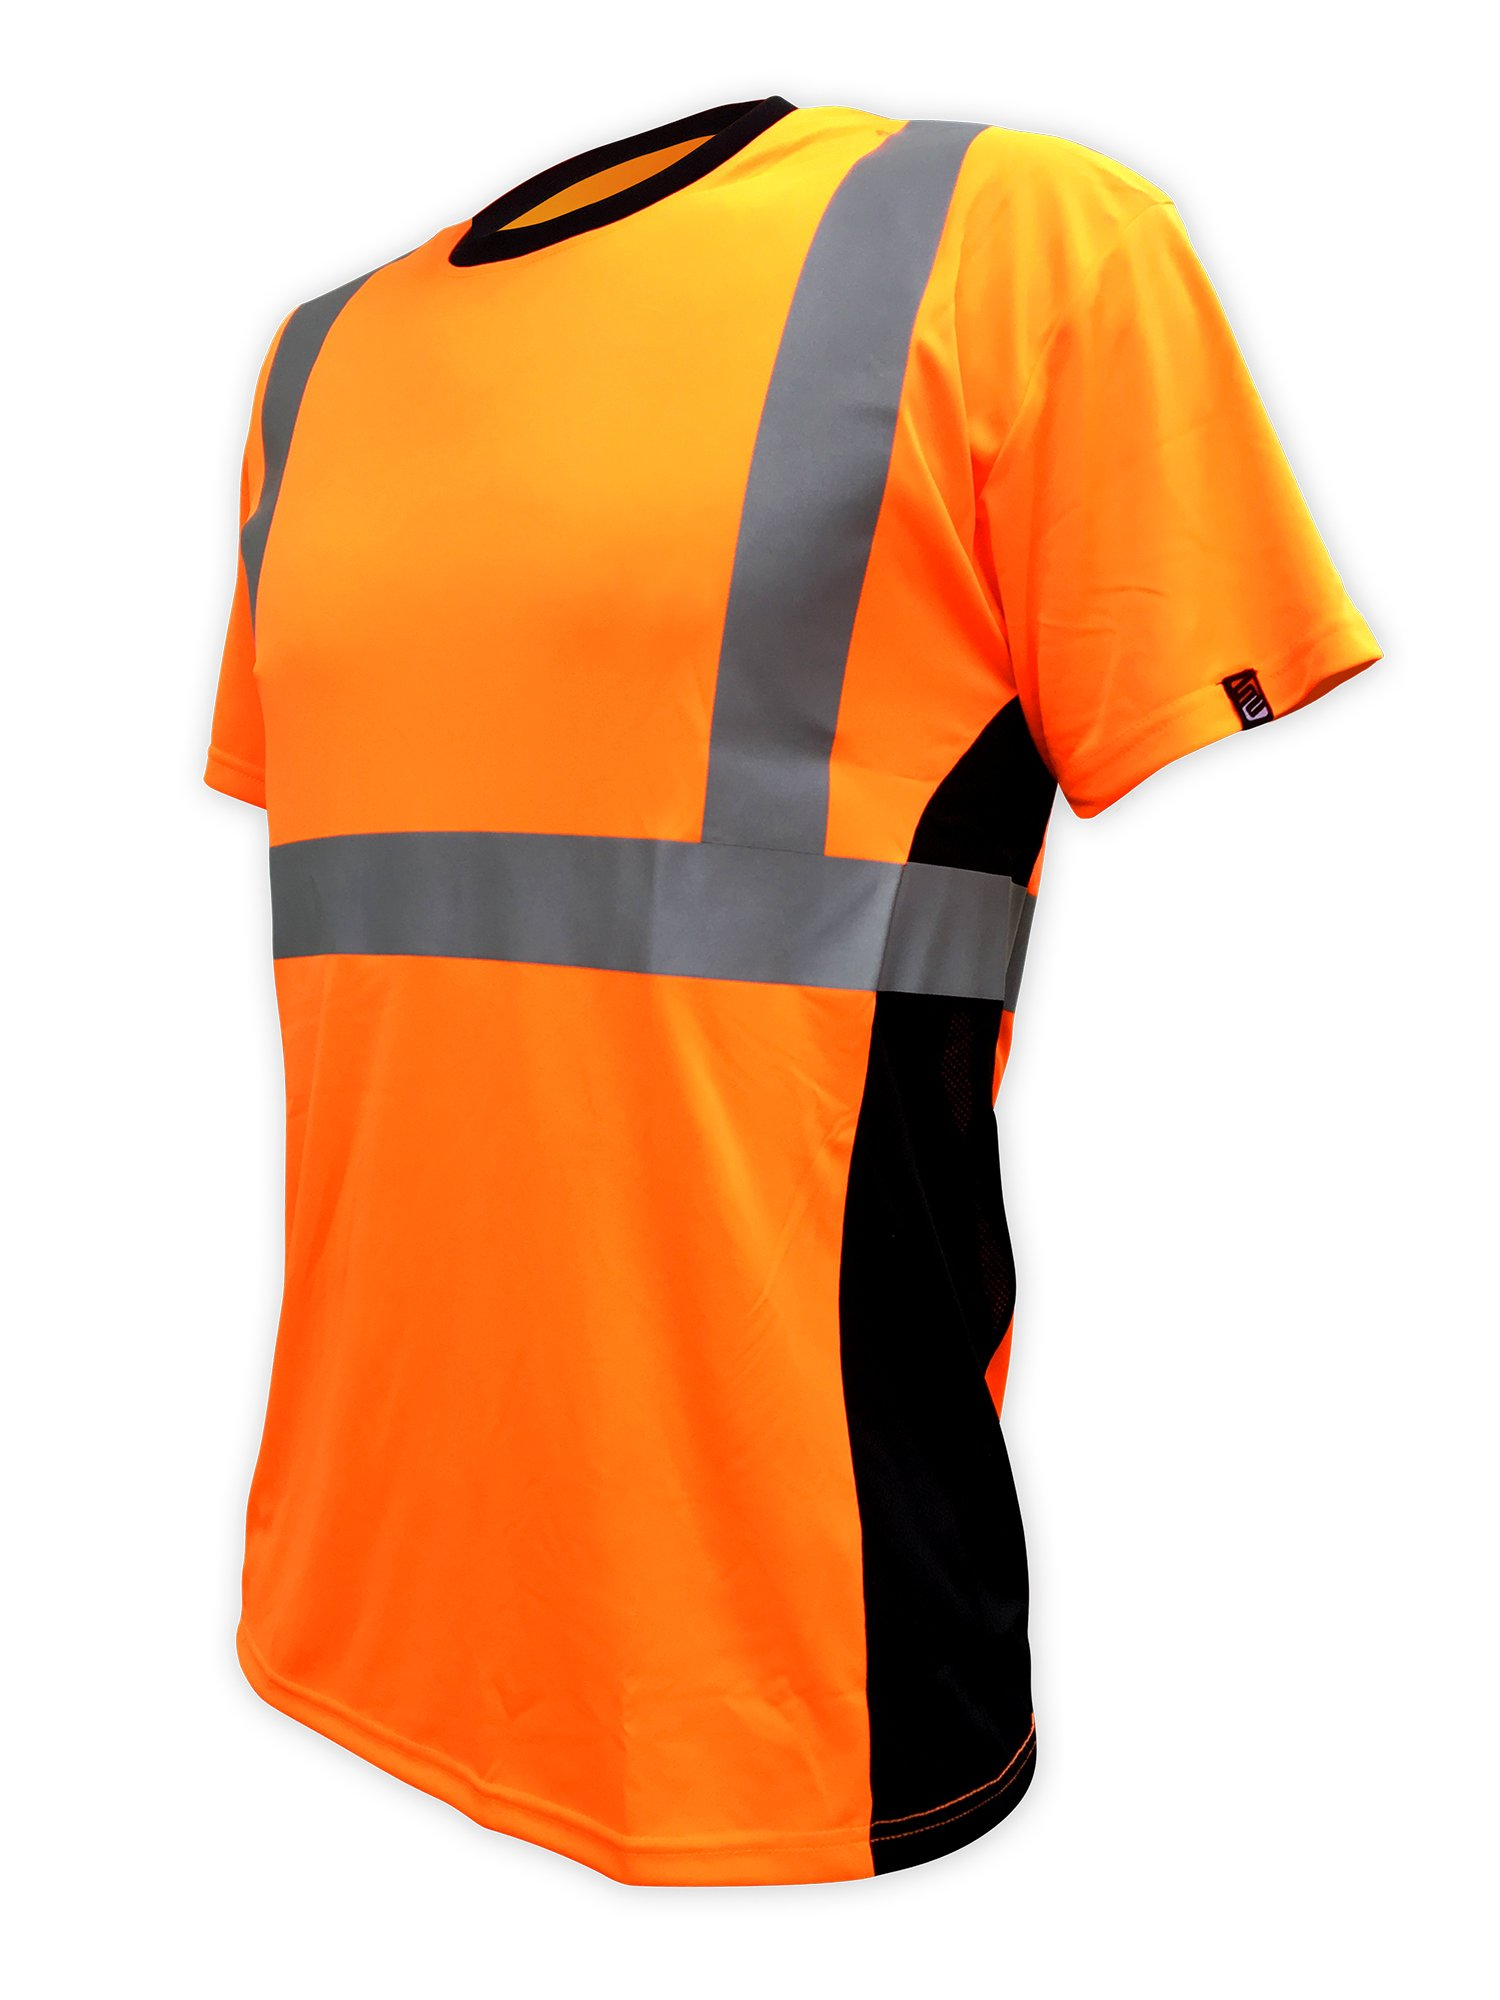 SafetyShirtz SS360 ANSI Class 2 Safety Tee Orange w/ Vented Sides XL